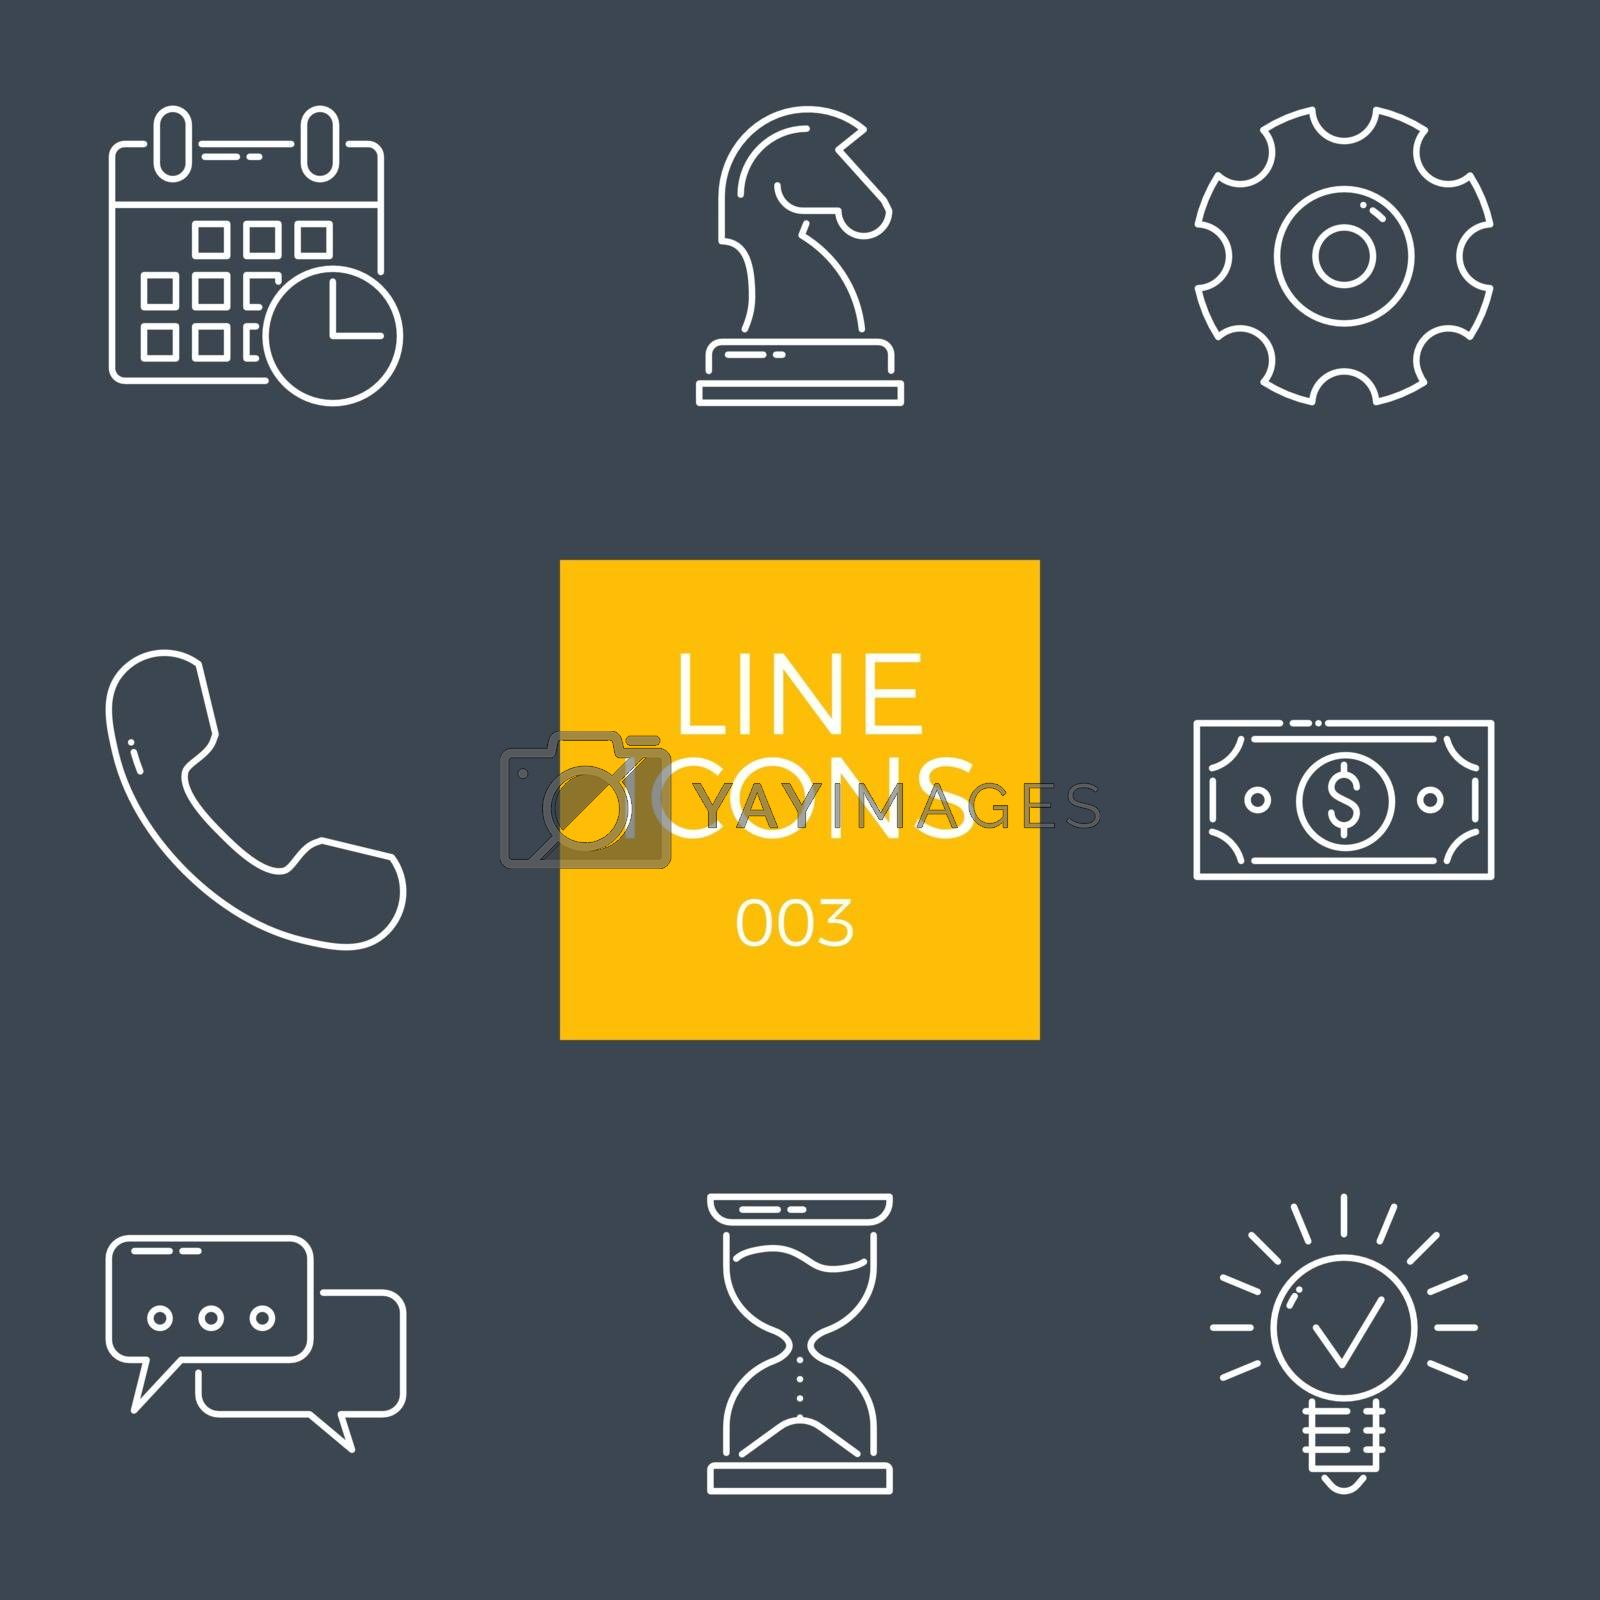 Business Related Vector Line Icons Set. Isolated on Black Background. Editable Stroke.